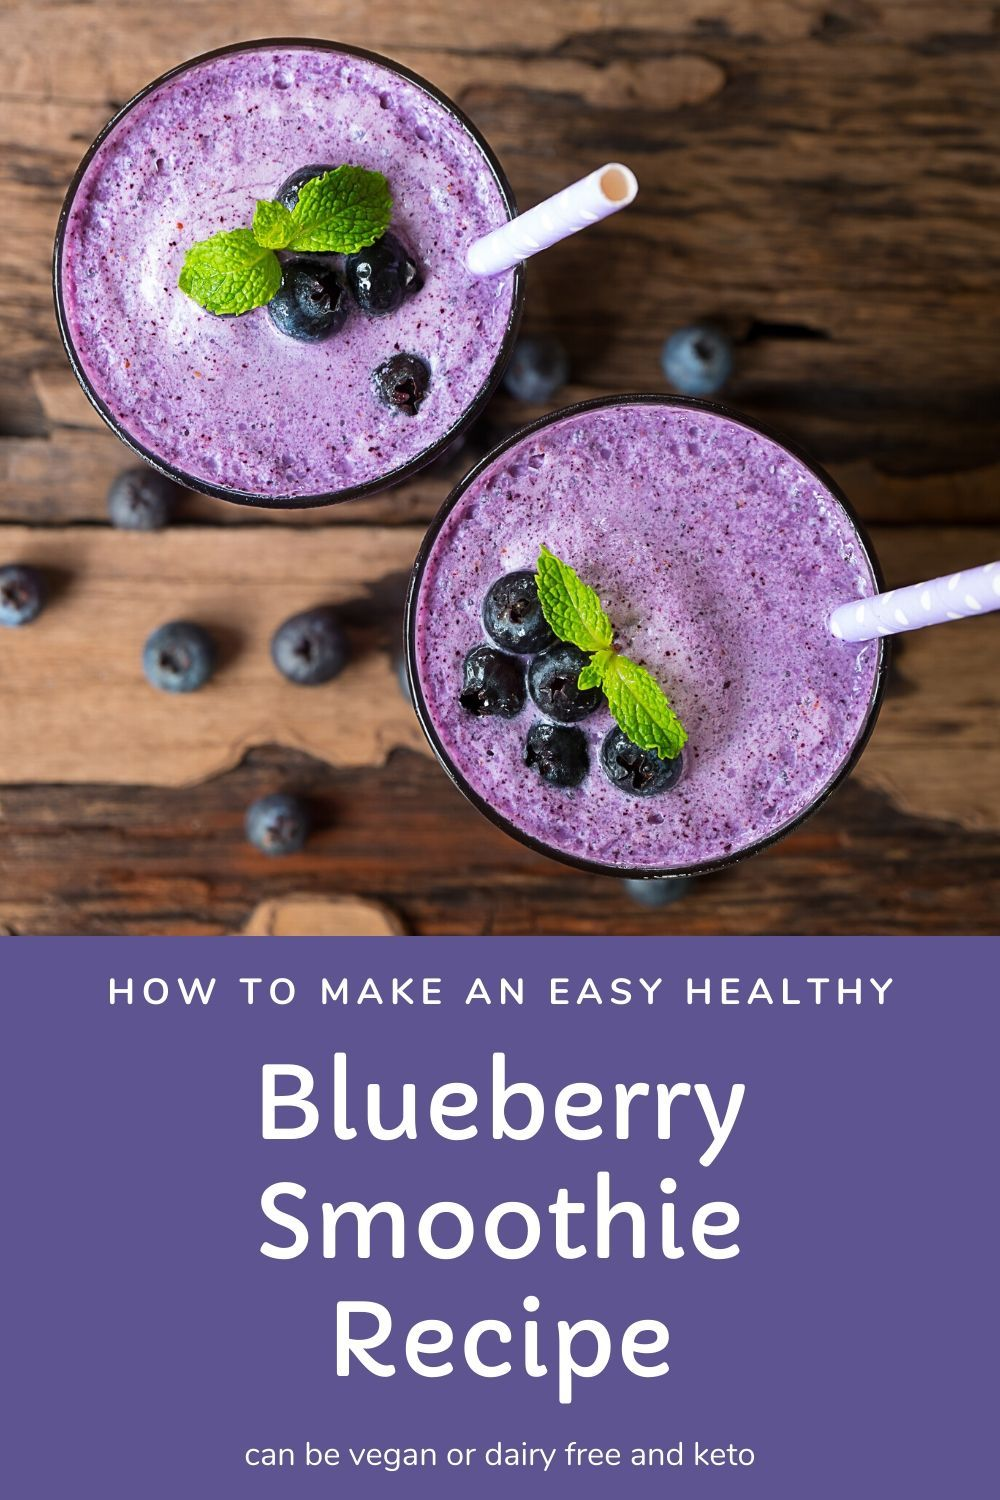 Blueberry smoothie recipe without banana in 2020